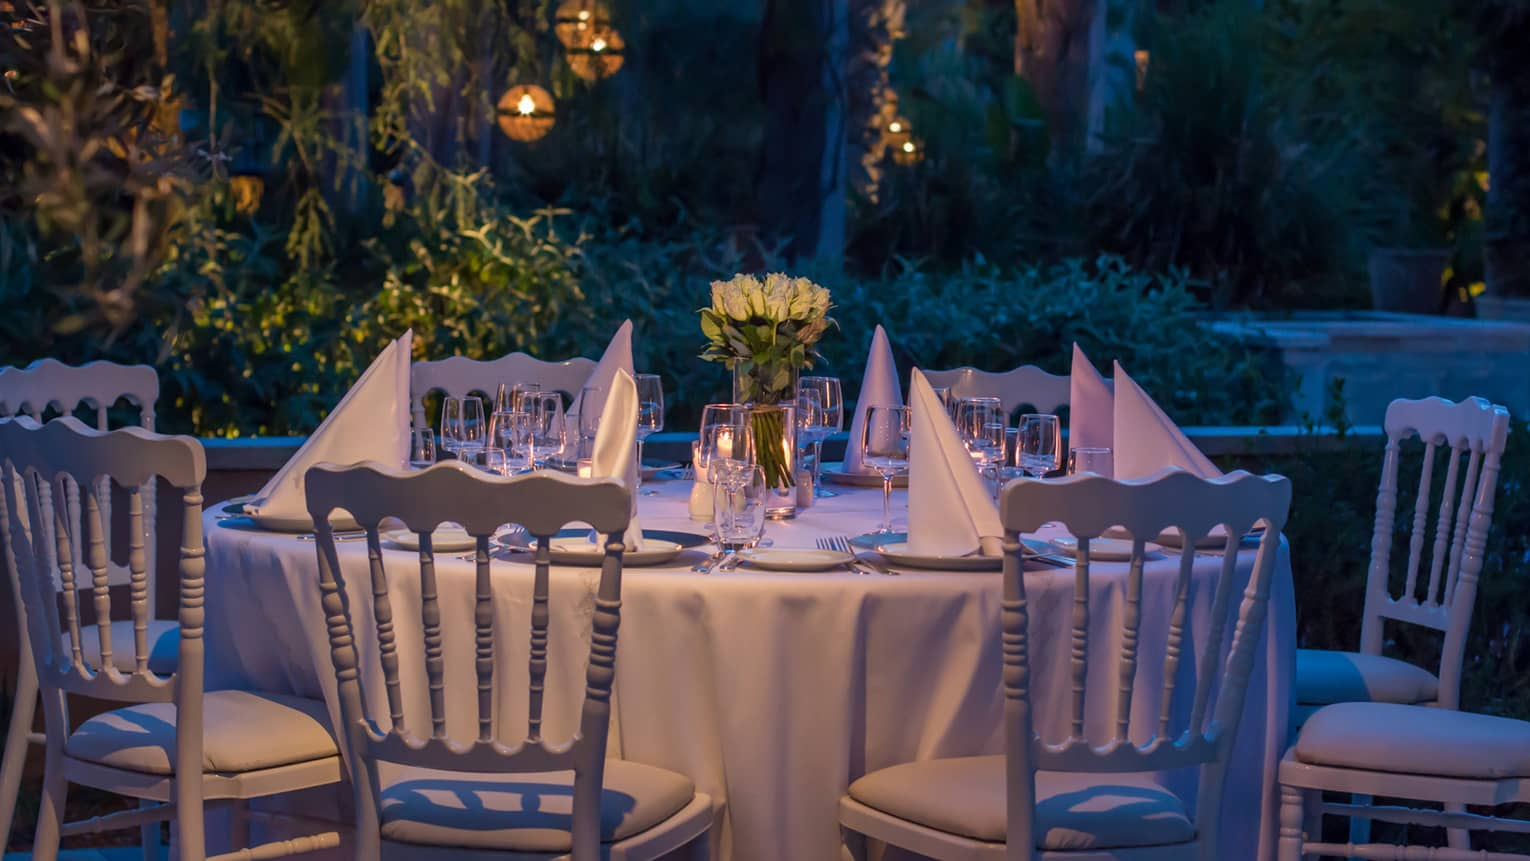 Folded white napkins on small round banquet dining table in garden at night